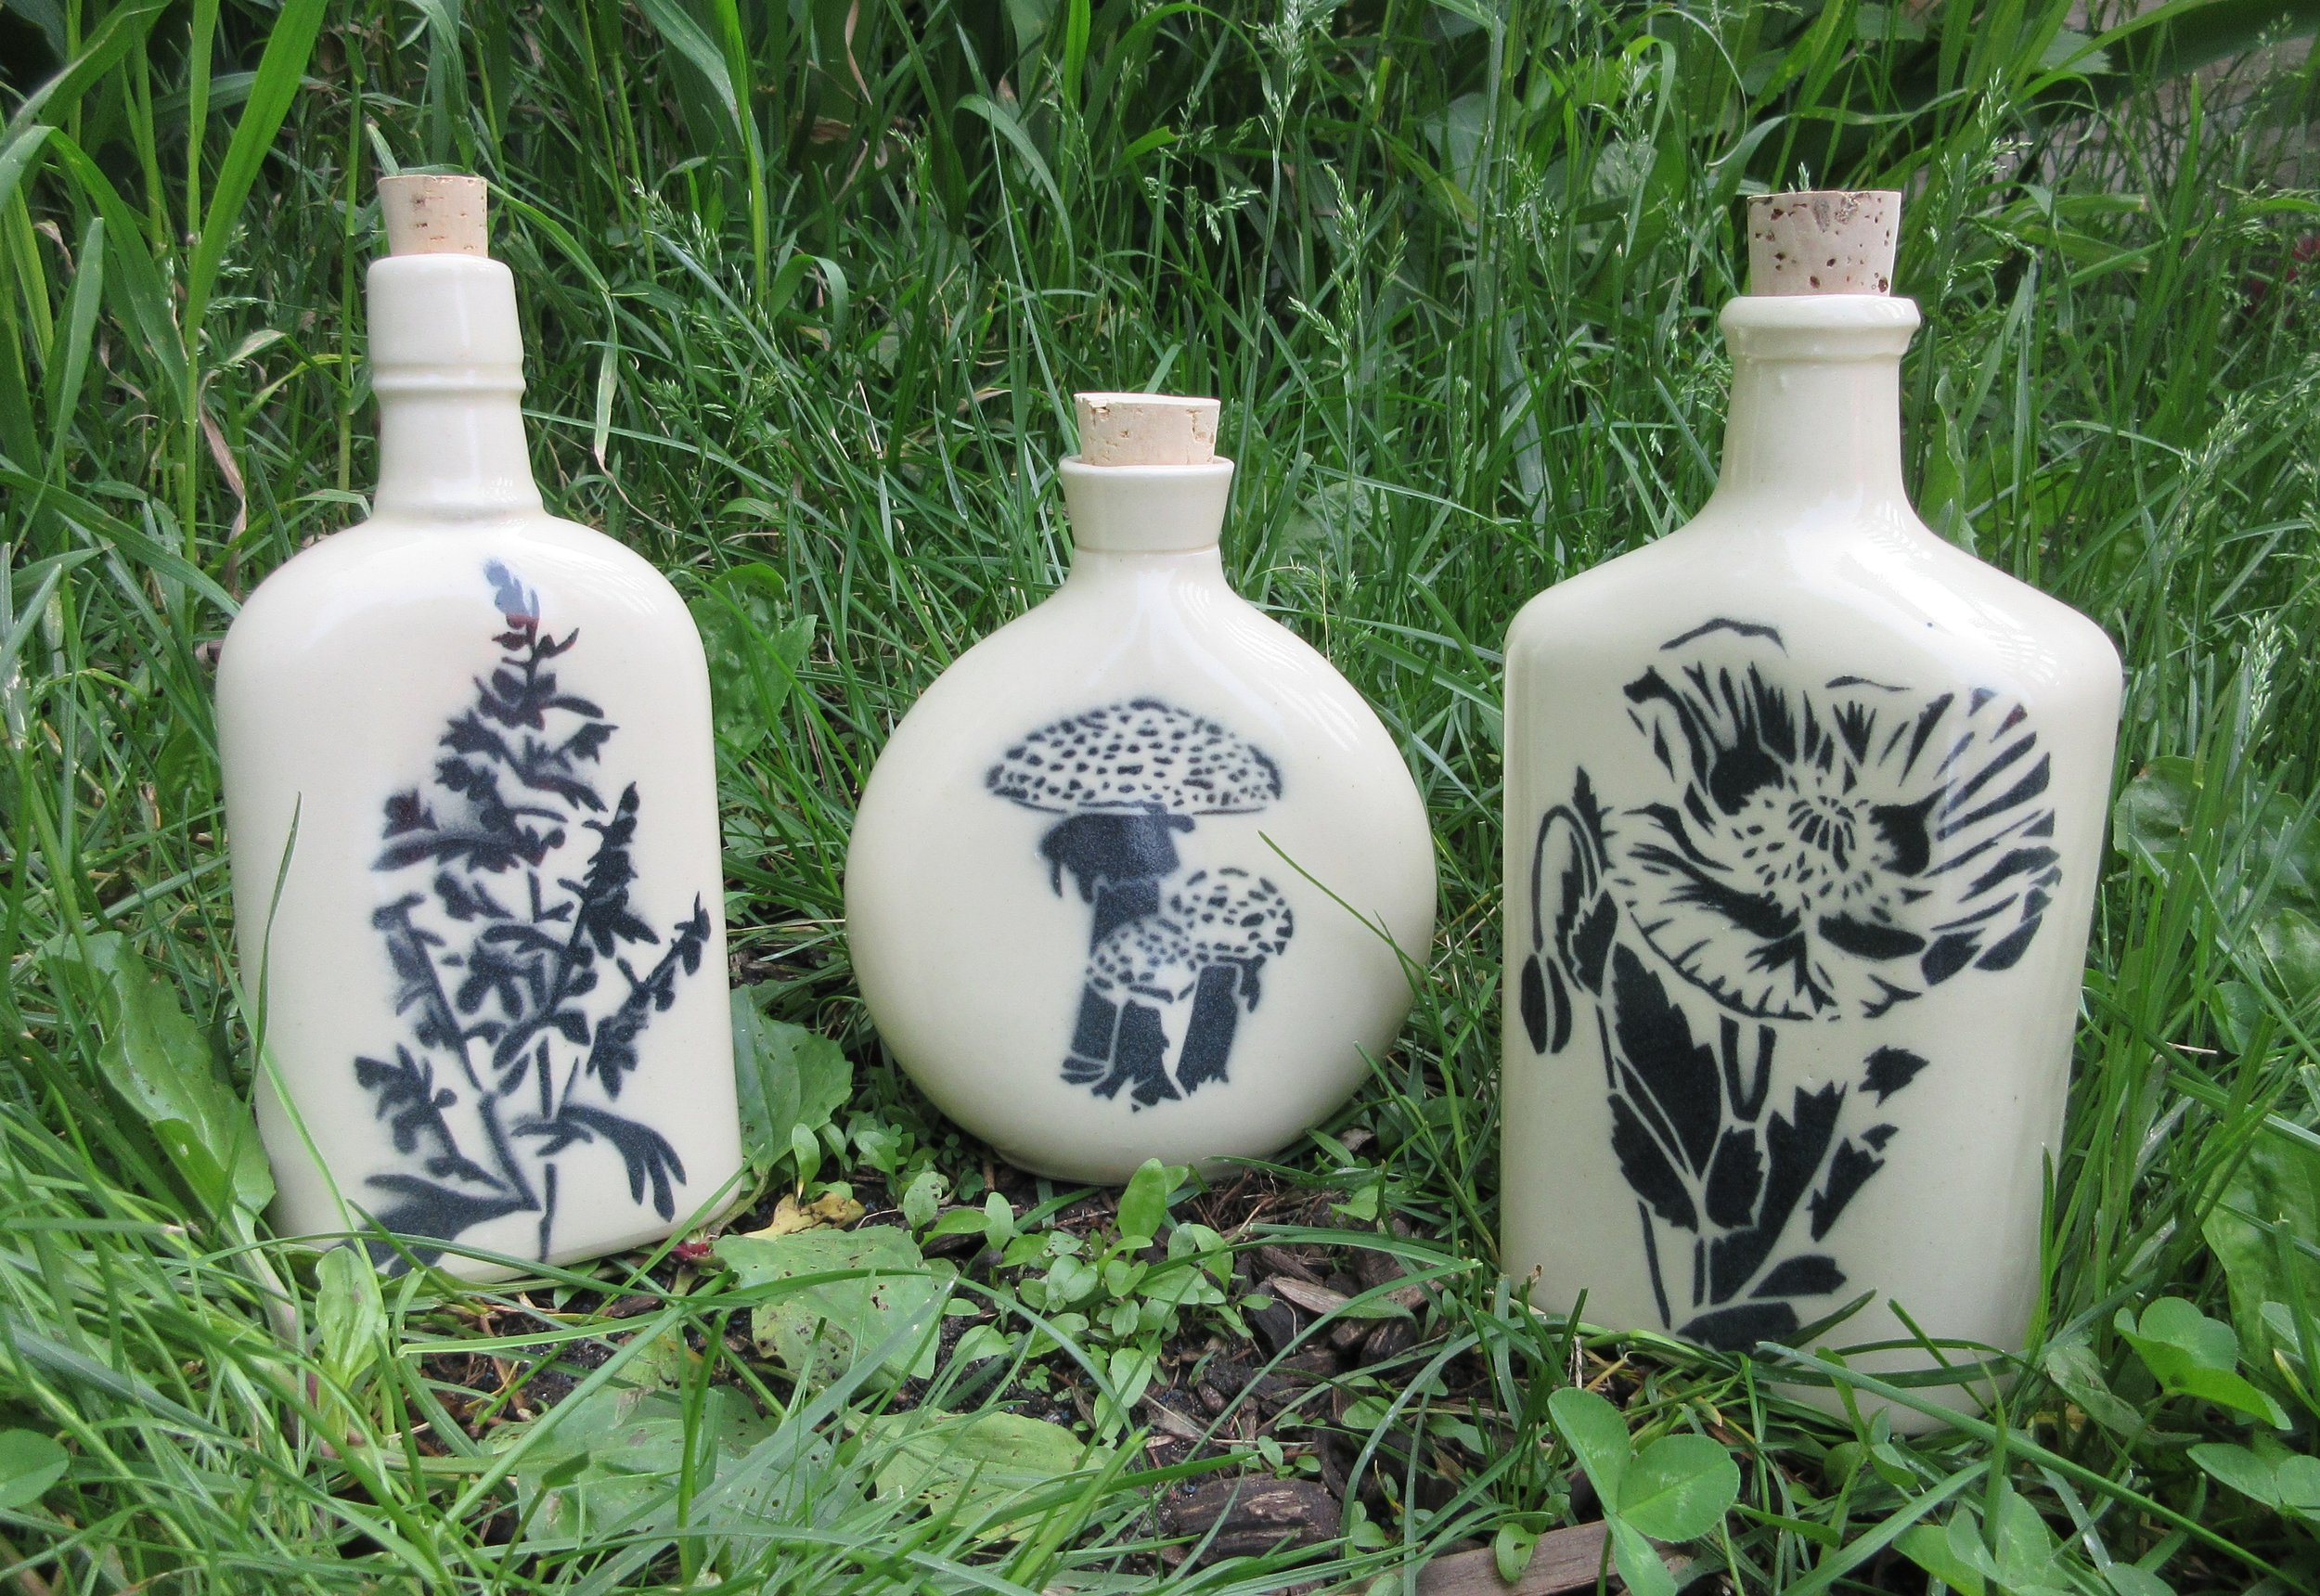 Baneful Herb stencils on slipcast ceramic Witch Bottles: Mugwort, Amanita and Poppy. 10 altogether, below are Belladonna, Blue Lotus, Datura, Hemlock, Henbane, Mandrake and Wolfbane. Witch bottles migrated with witches of Celtic descent to the East coast and Appalachia in the 1600's, beginning as countermagical devices used to protect against other witchcraft and conjure.